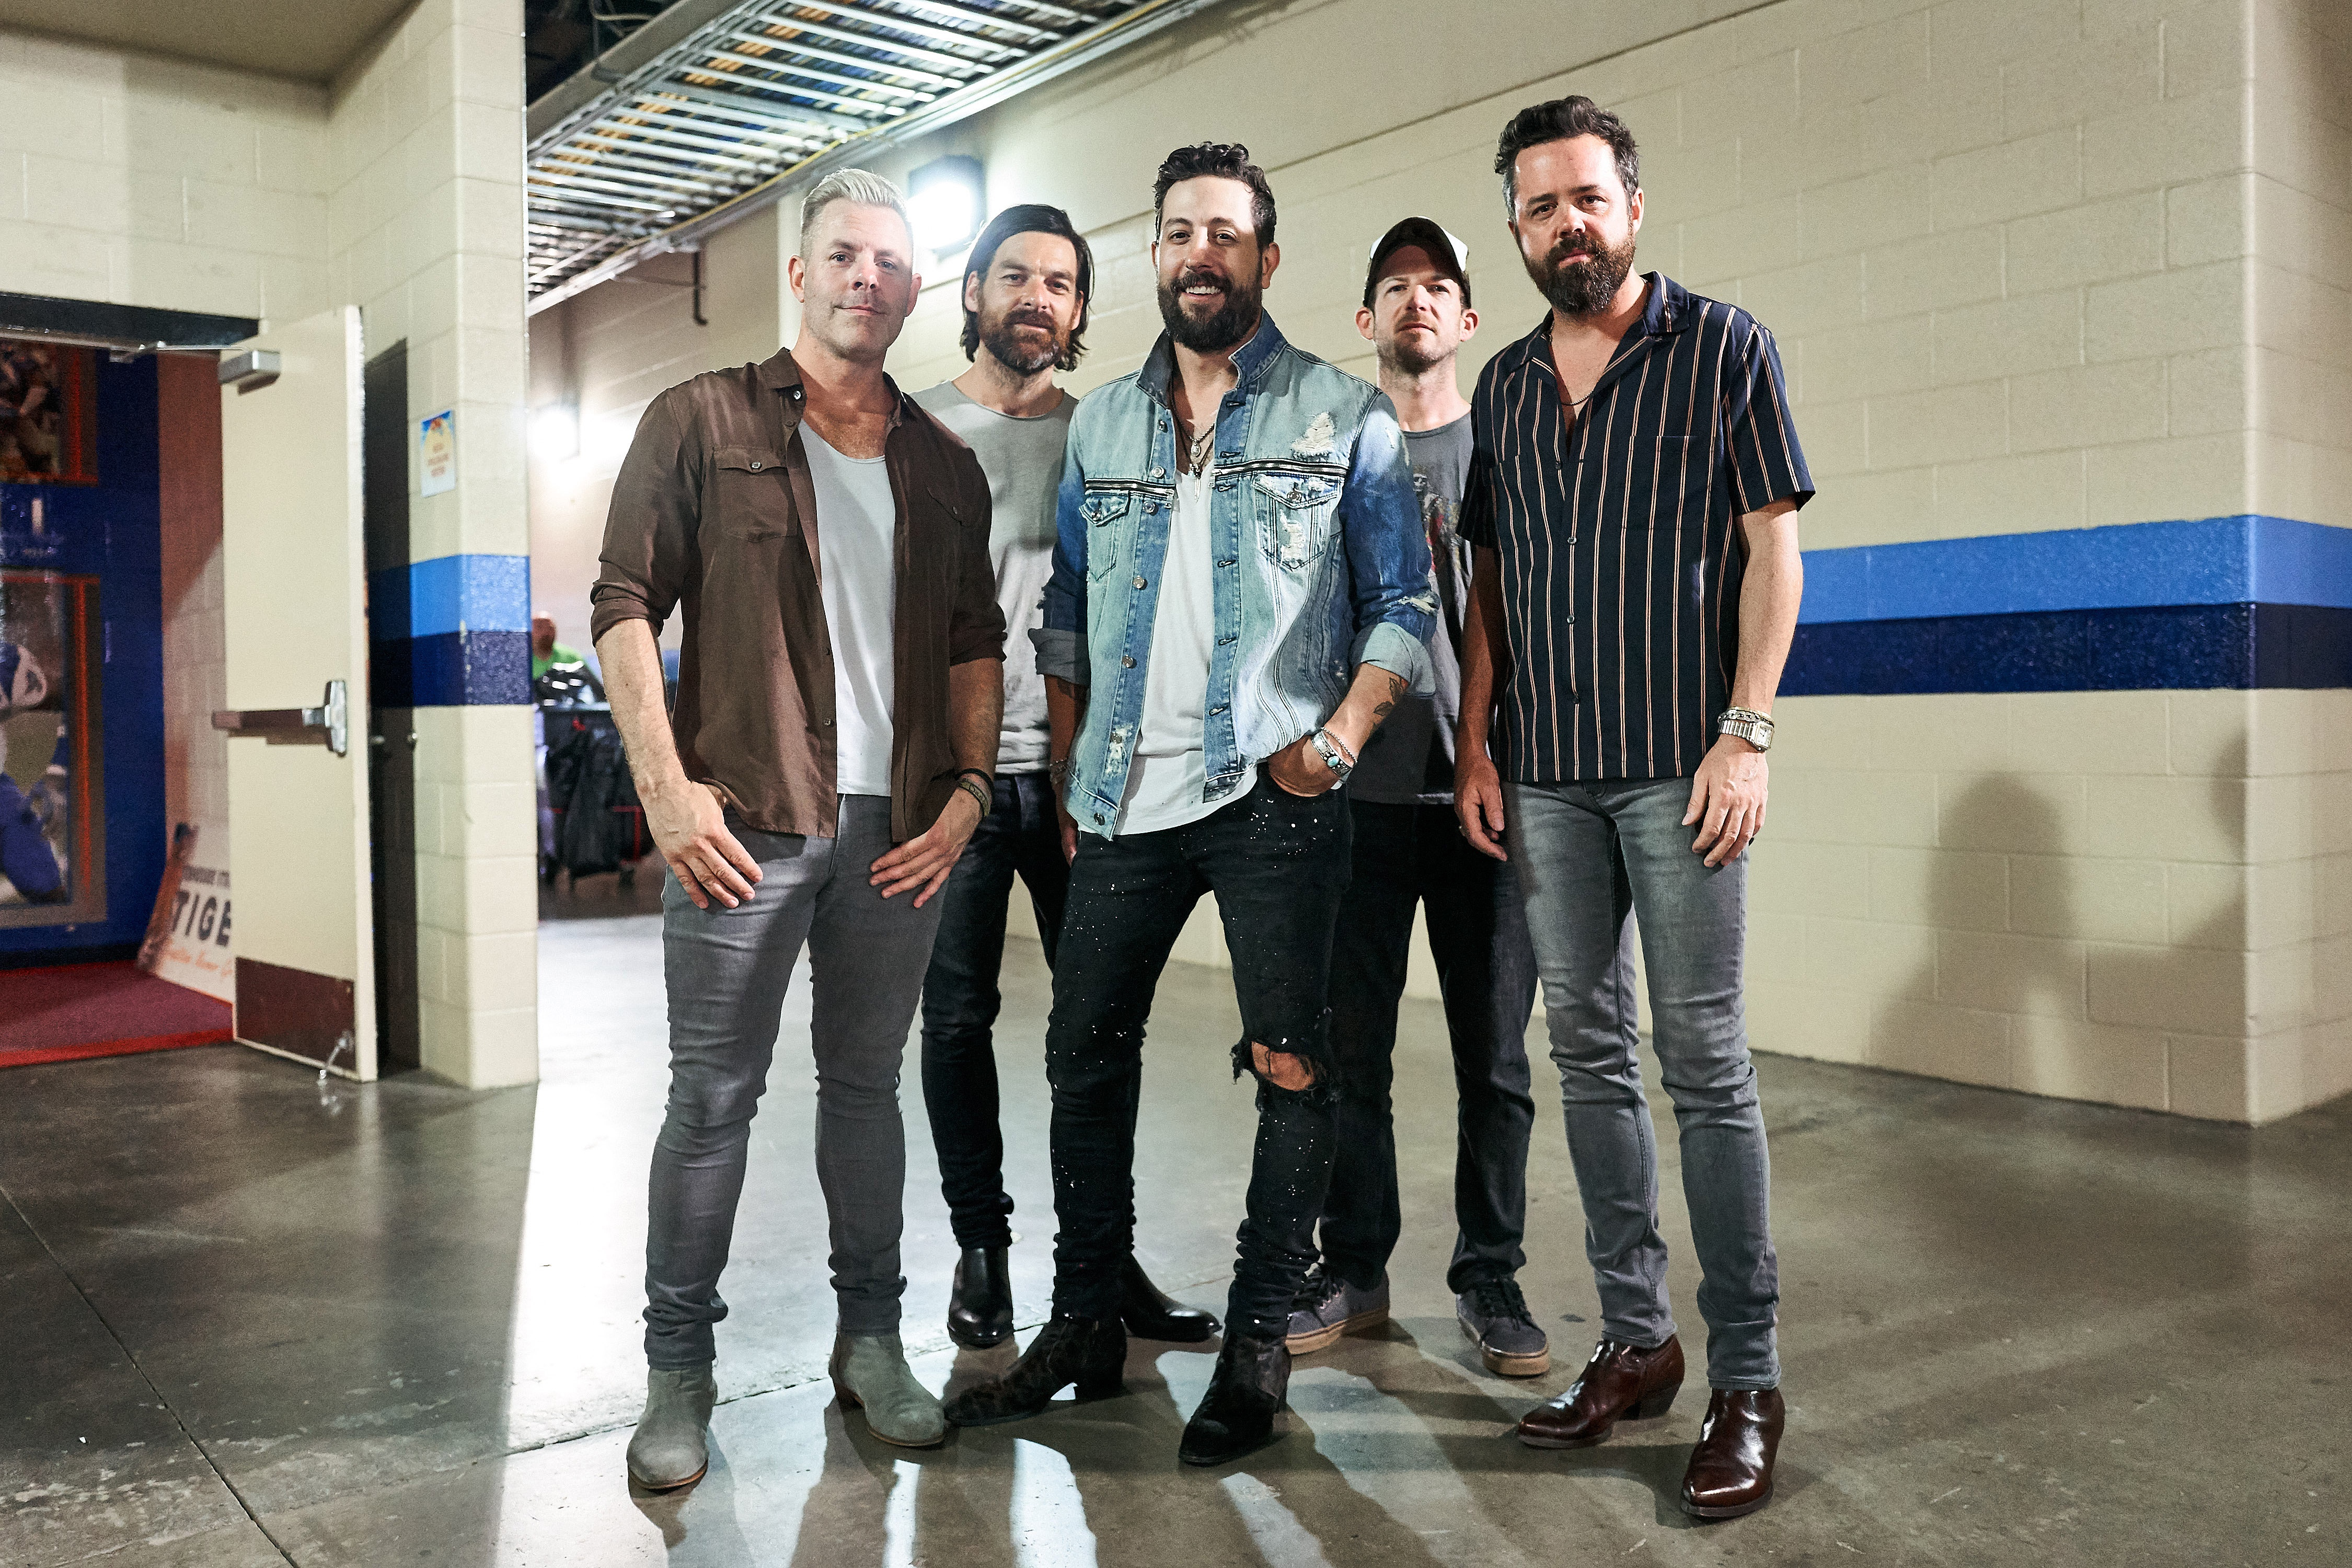 NASHVILLE, TENNESSEE - JUNE 09: Geoff Sprung, Trevor Rosen, Matthew Ramsey, Whit Sellers and Brad Tursi of Old Dominion attend day 4 of the 2019 CMA Music Festival at Nissan Stadium on June 09, 2019 in Nashville, Tennessee. (Photo by John Shearer/Getty Images for CMA)